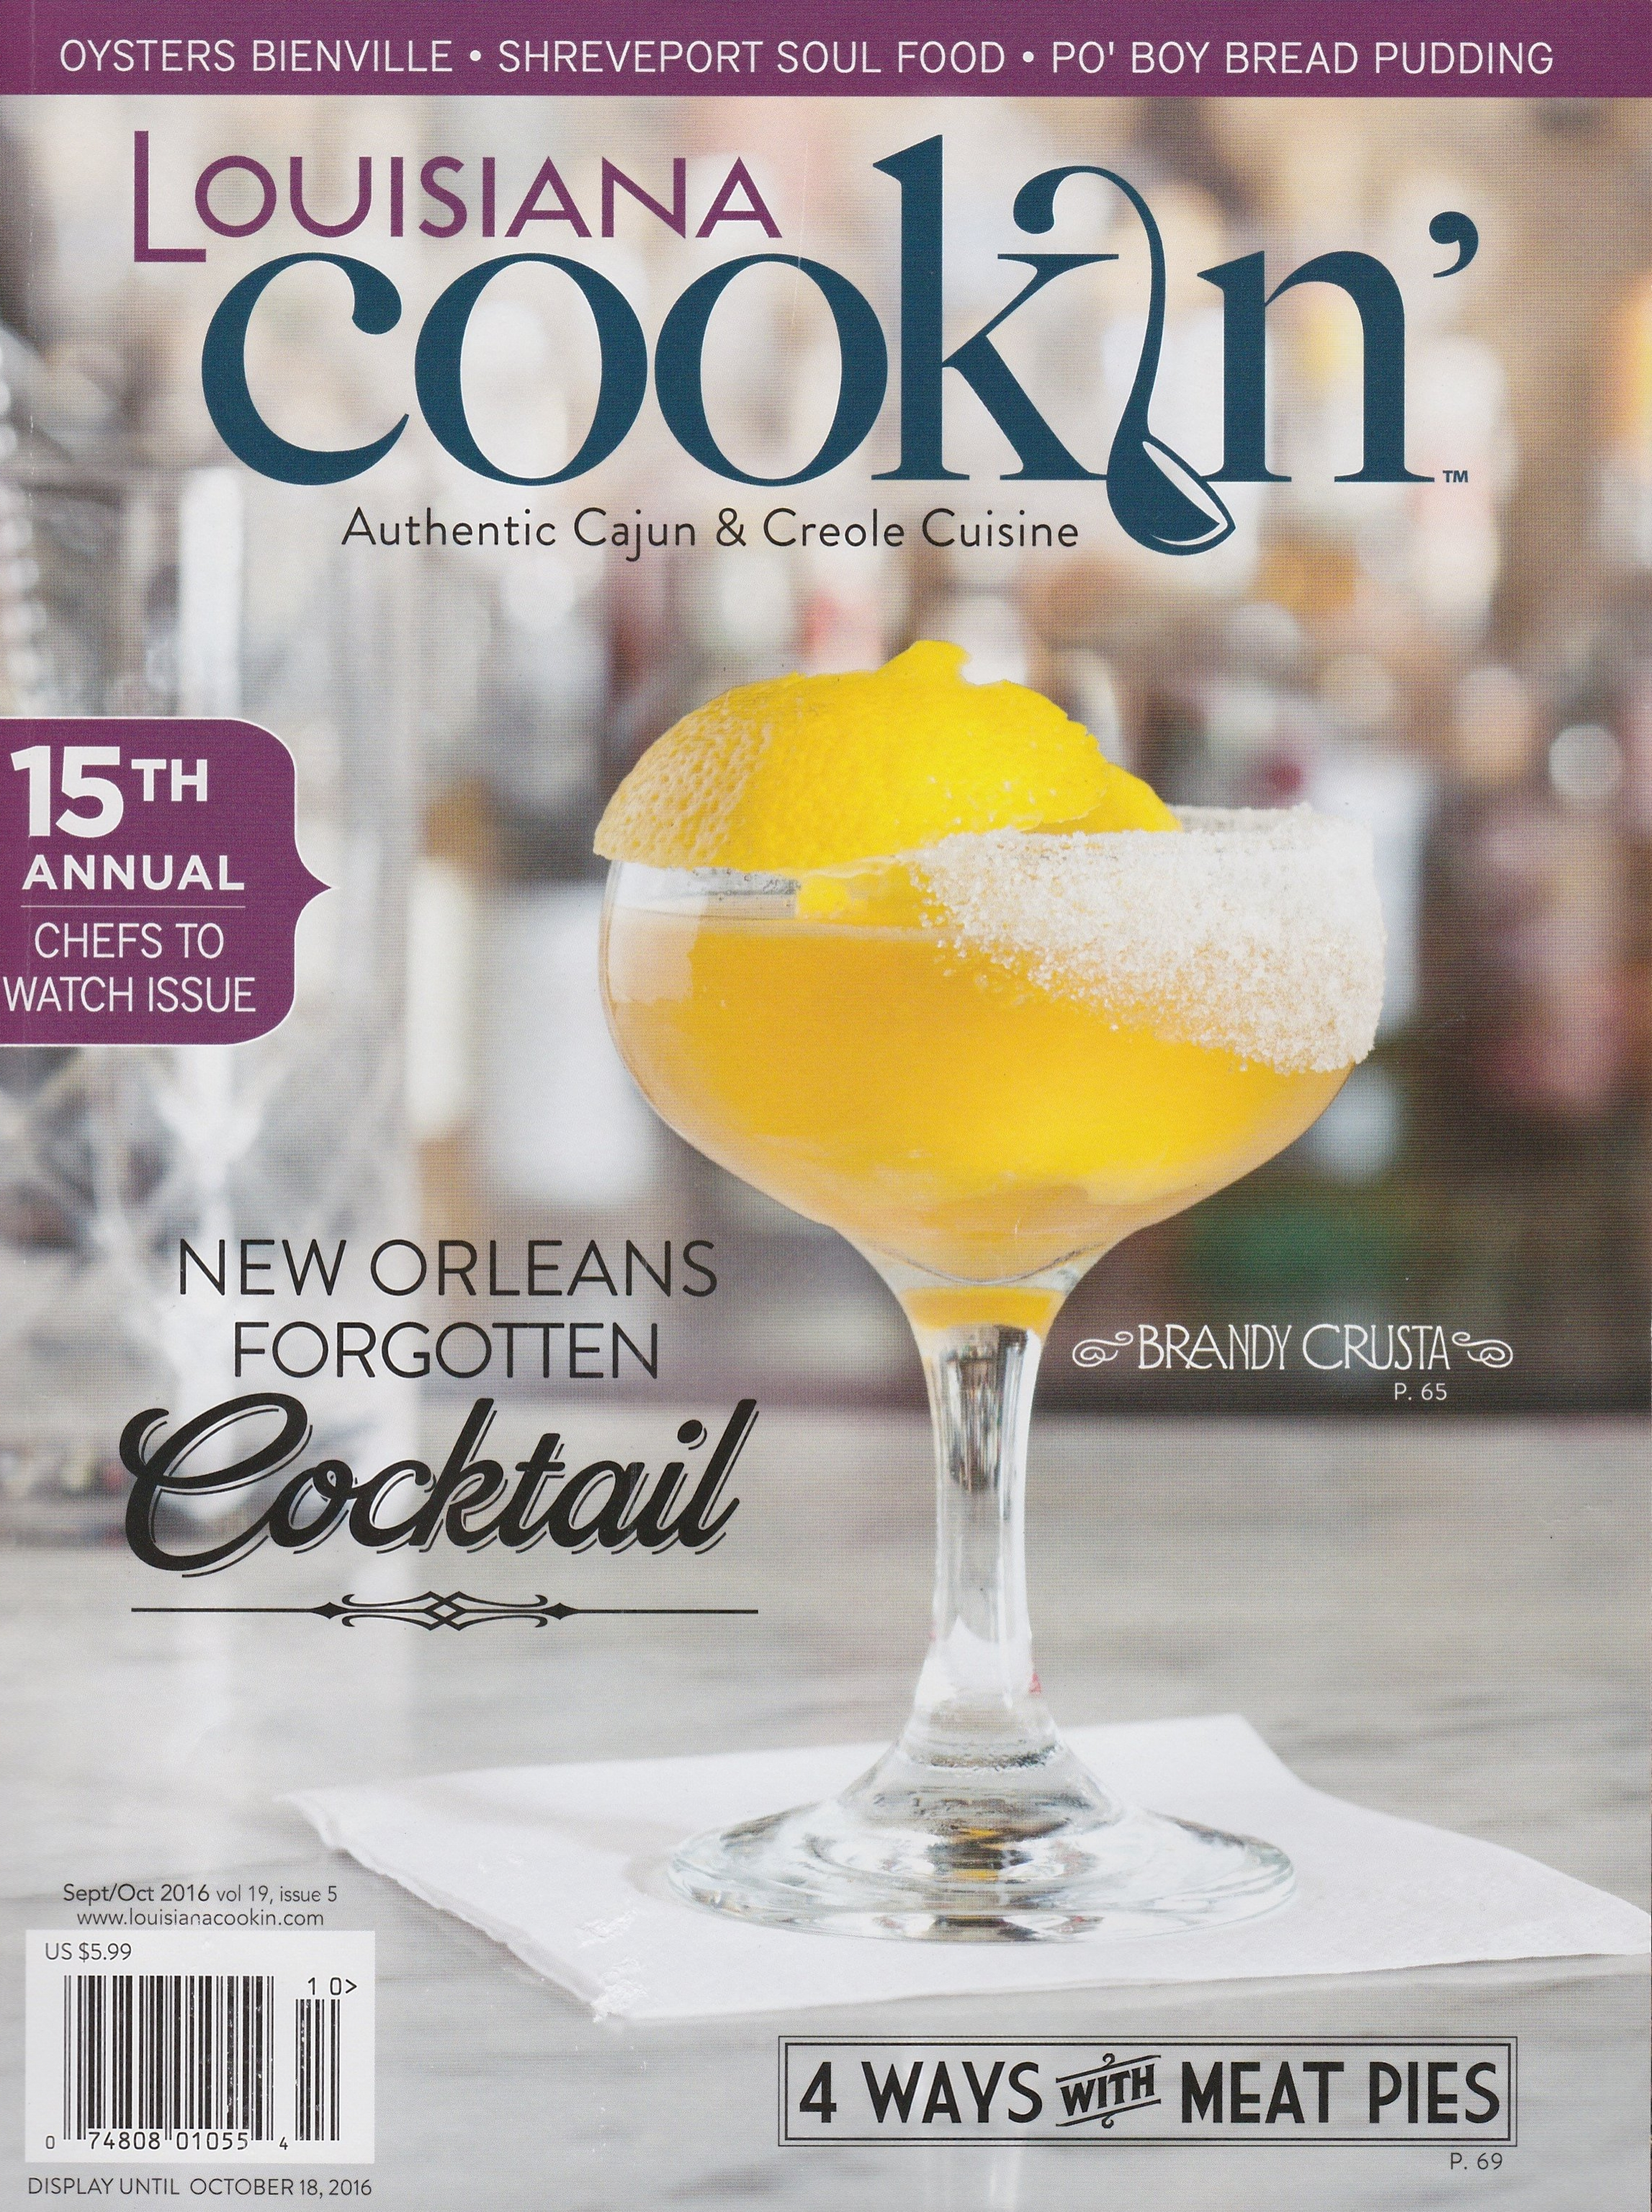 Louisiana Cookin' - Spillin' The Beans New and Notable